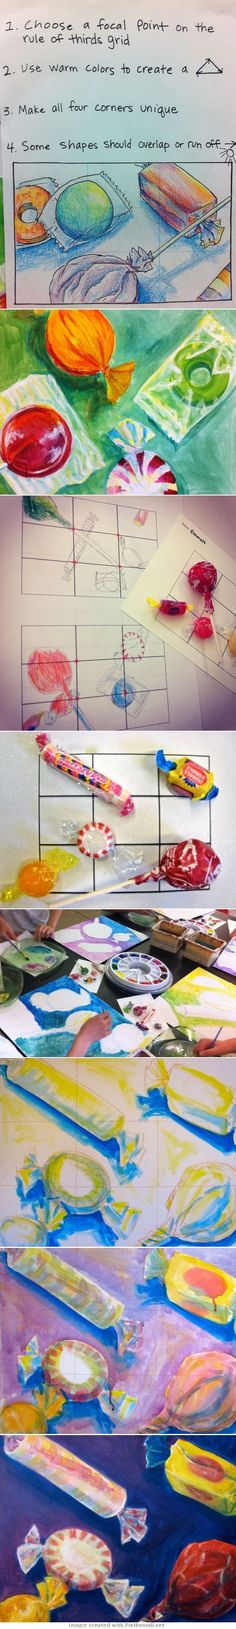 Wayne Thiebaud Candy Compositions Concepts